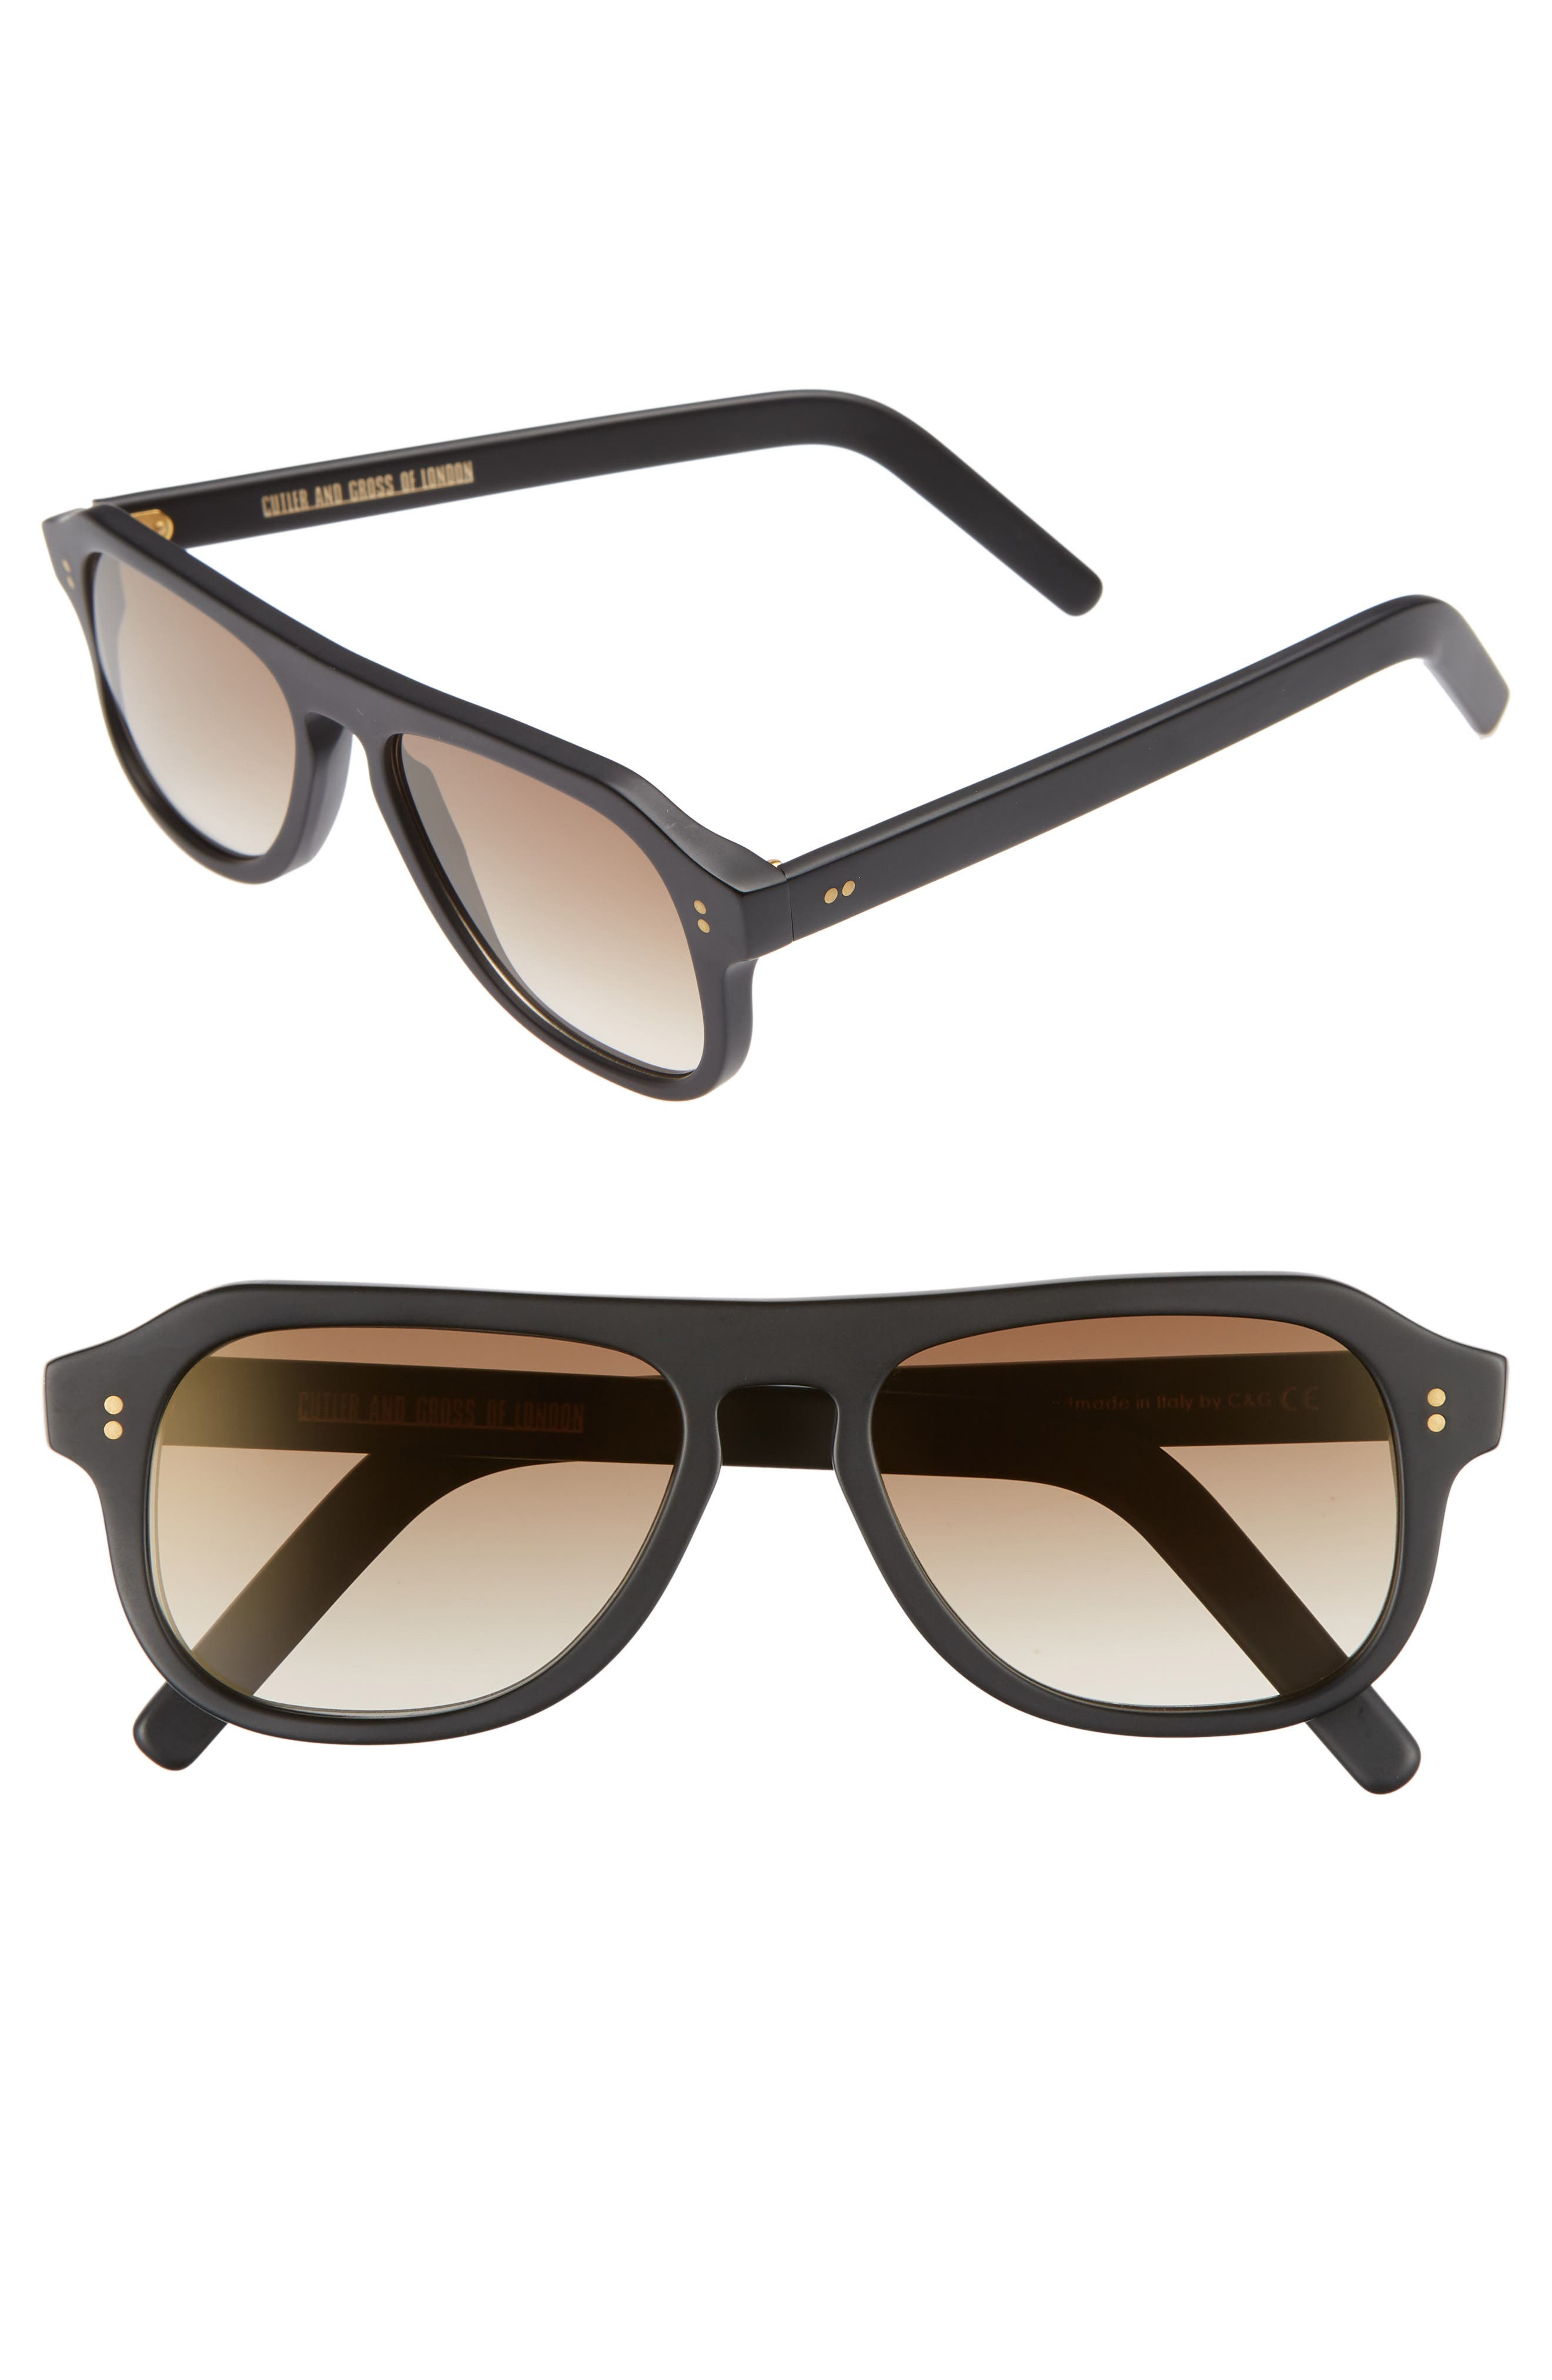 CUTLER AND GROSS 53MM POLARIZED SUNGLASSES - MATTE BLACK/ BROWN